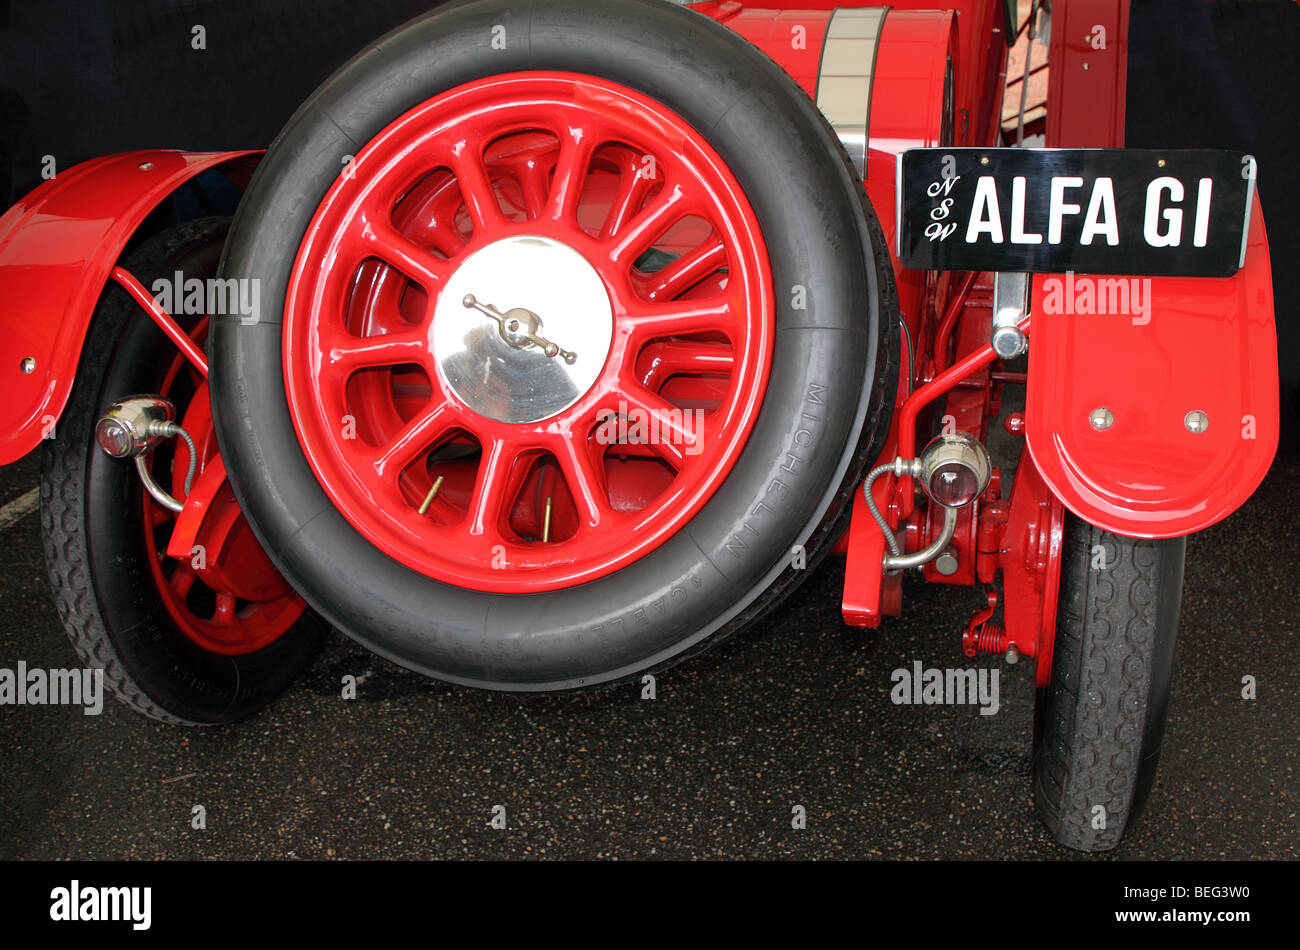 Alpha Romeo G1, 1921. Detail of the rear of the vehicle. - Stock Image